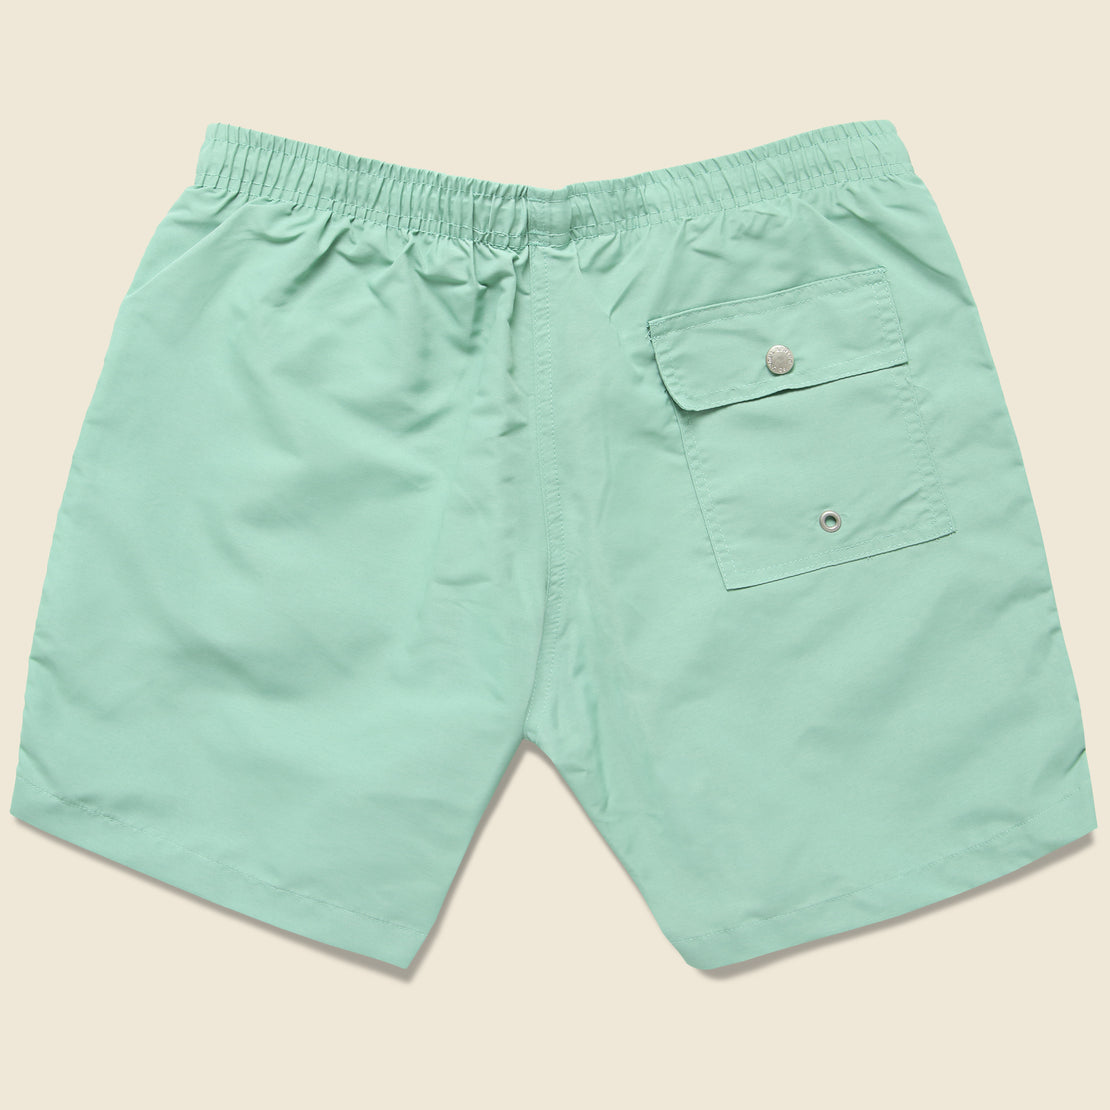 Solid Swim Trunk - Sea Foam